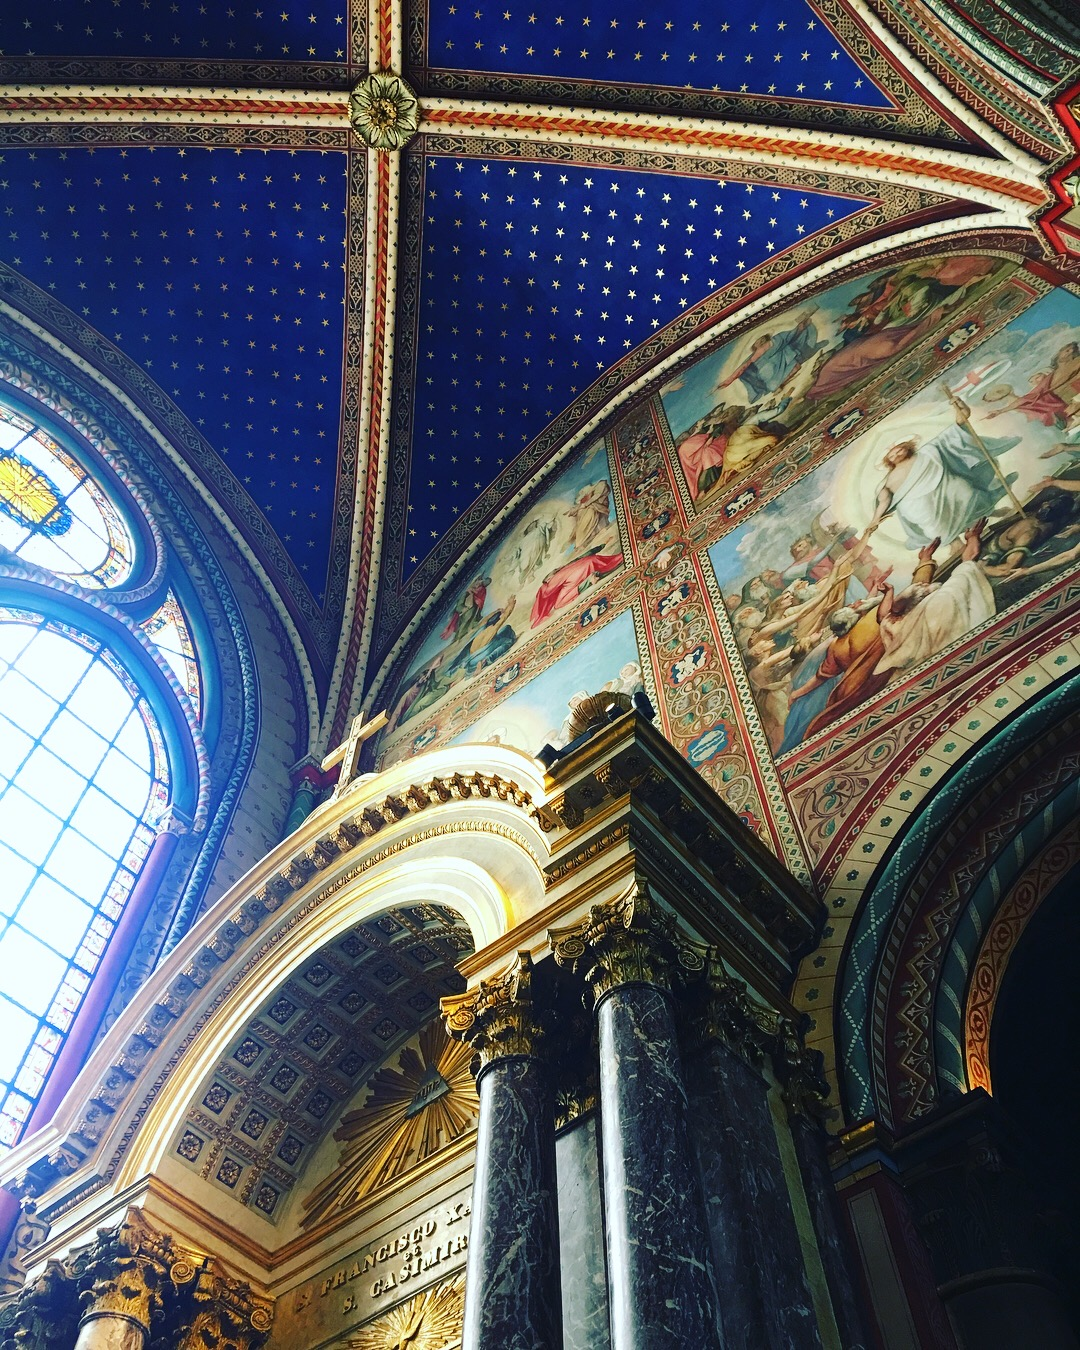 More Saint Germaine Cathedral